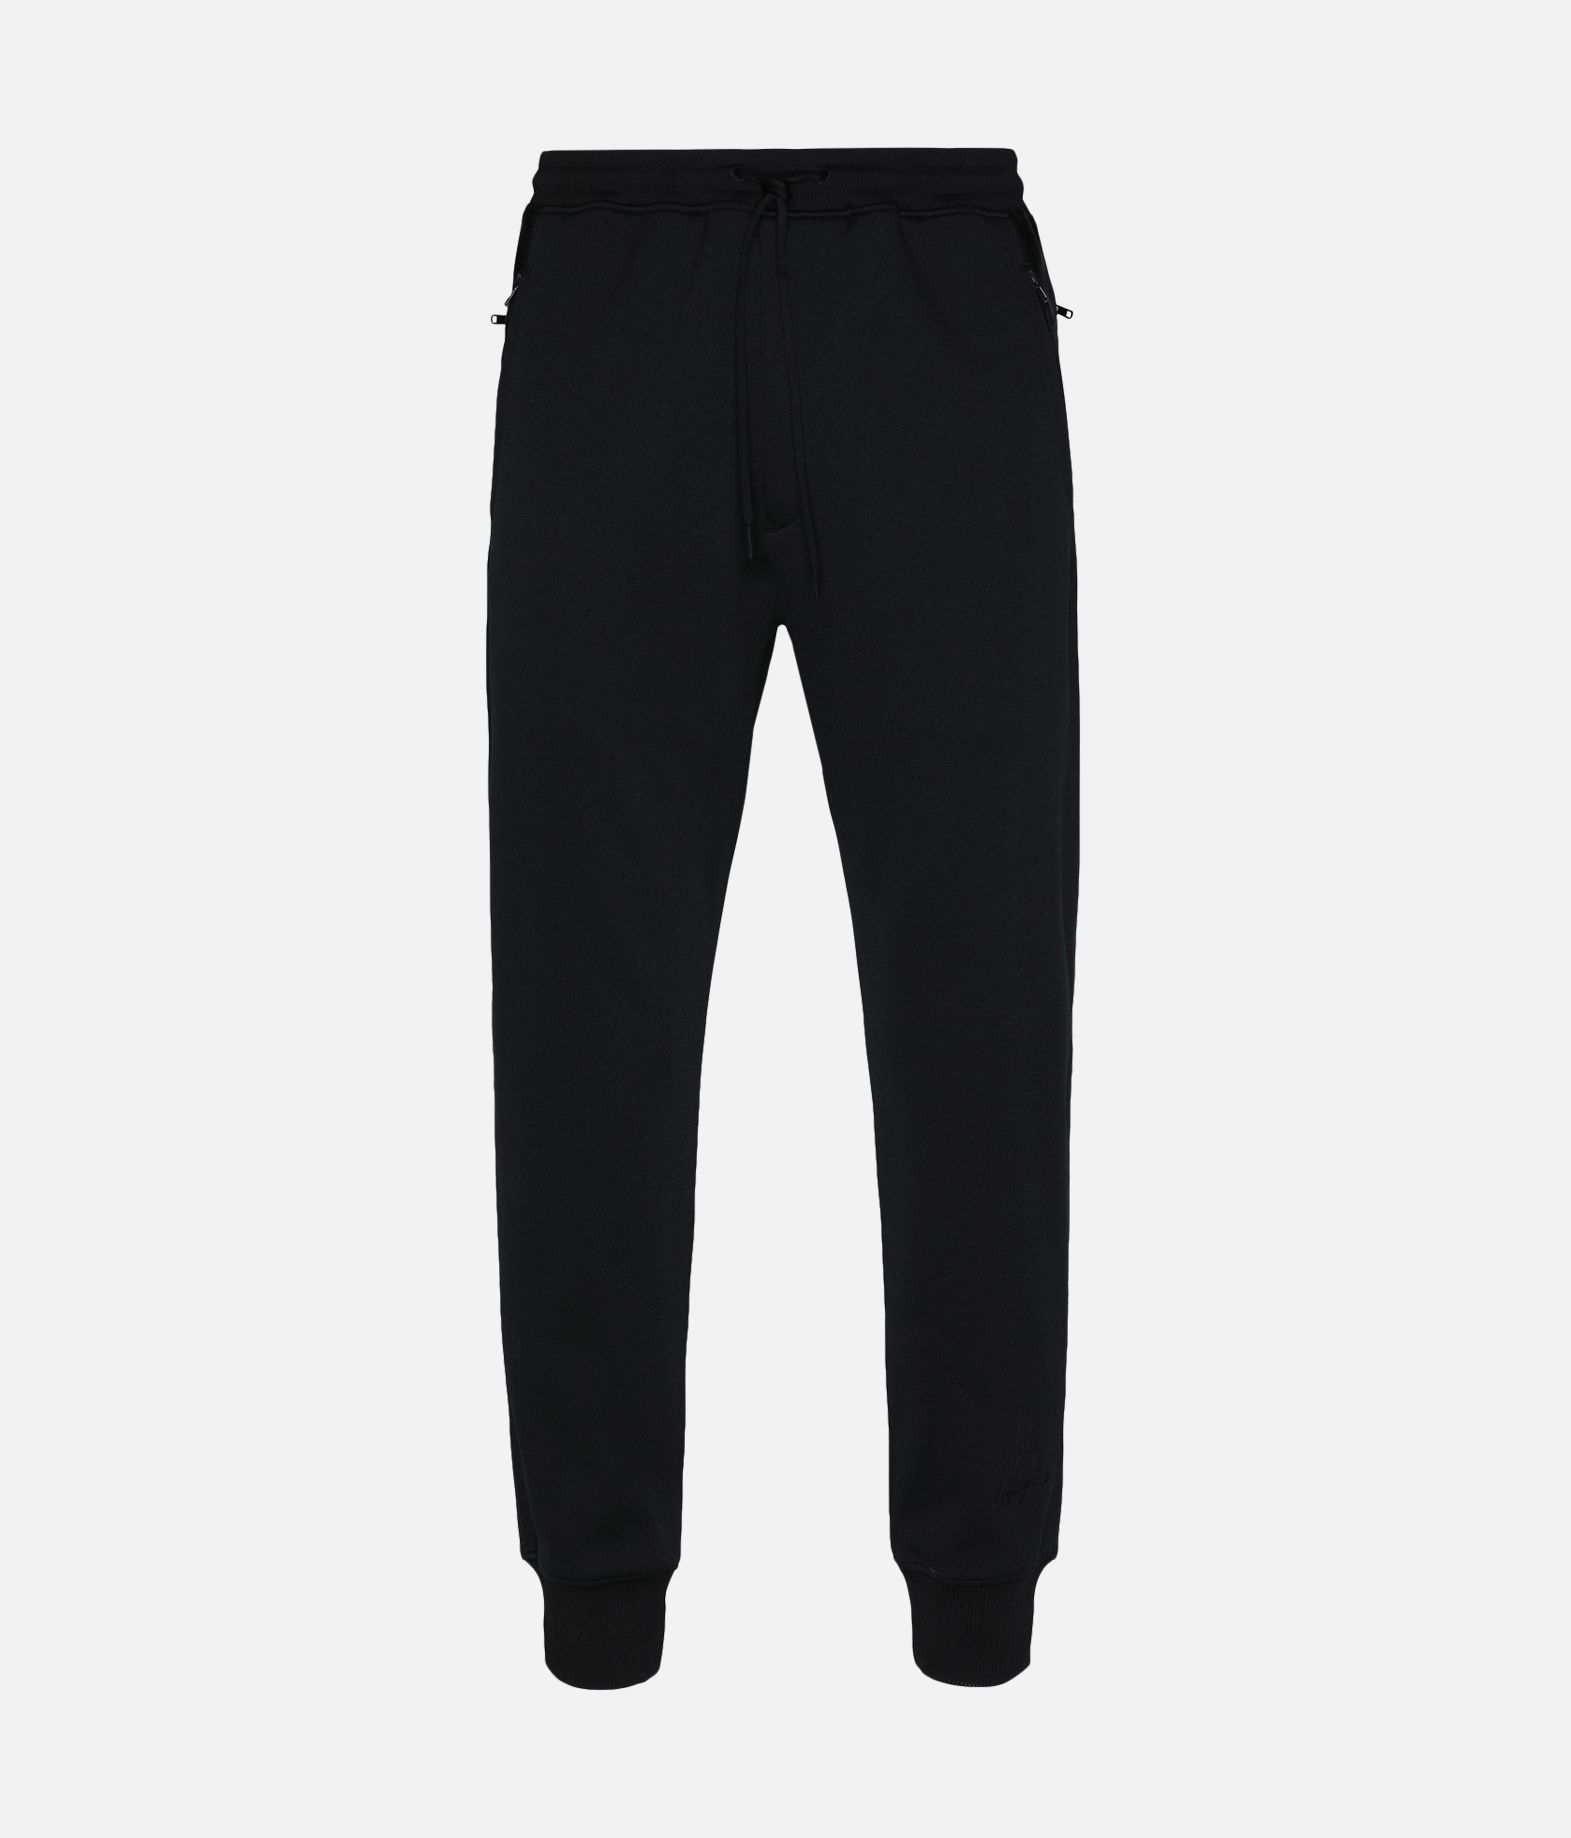 Y-3 Y-3 New Classic Track Pants Track pant Man f